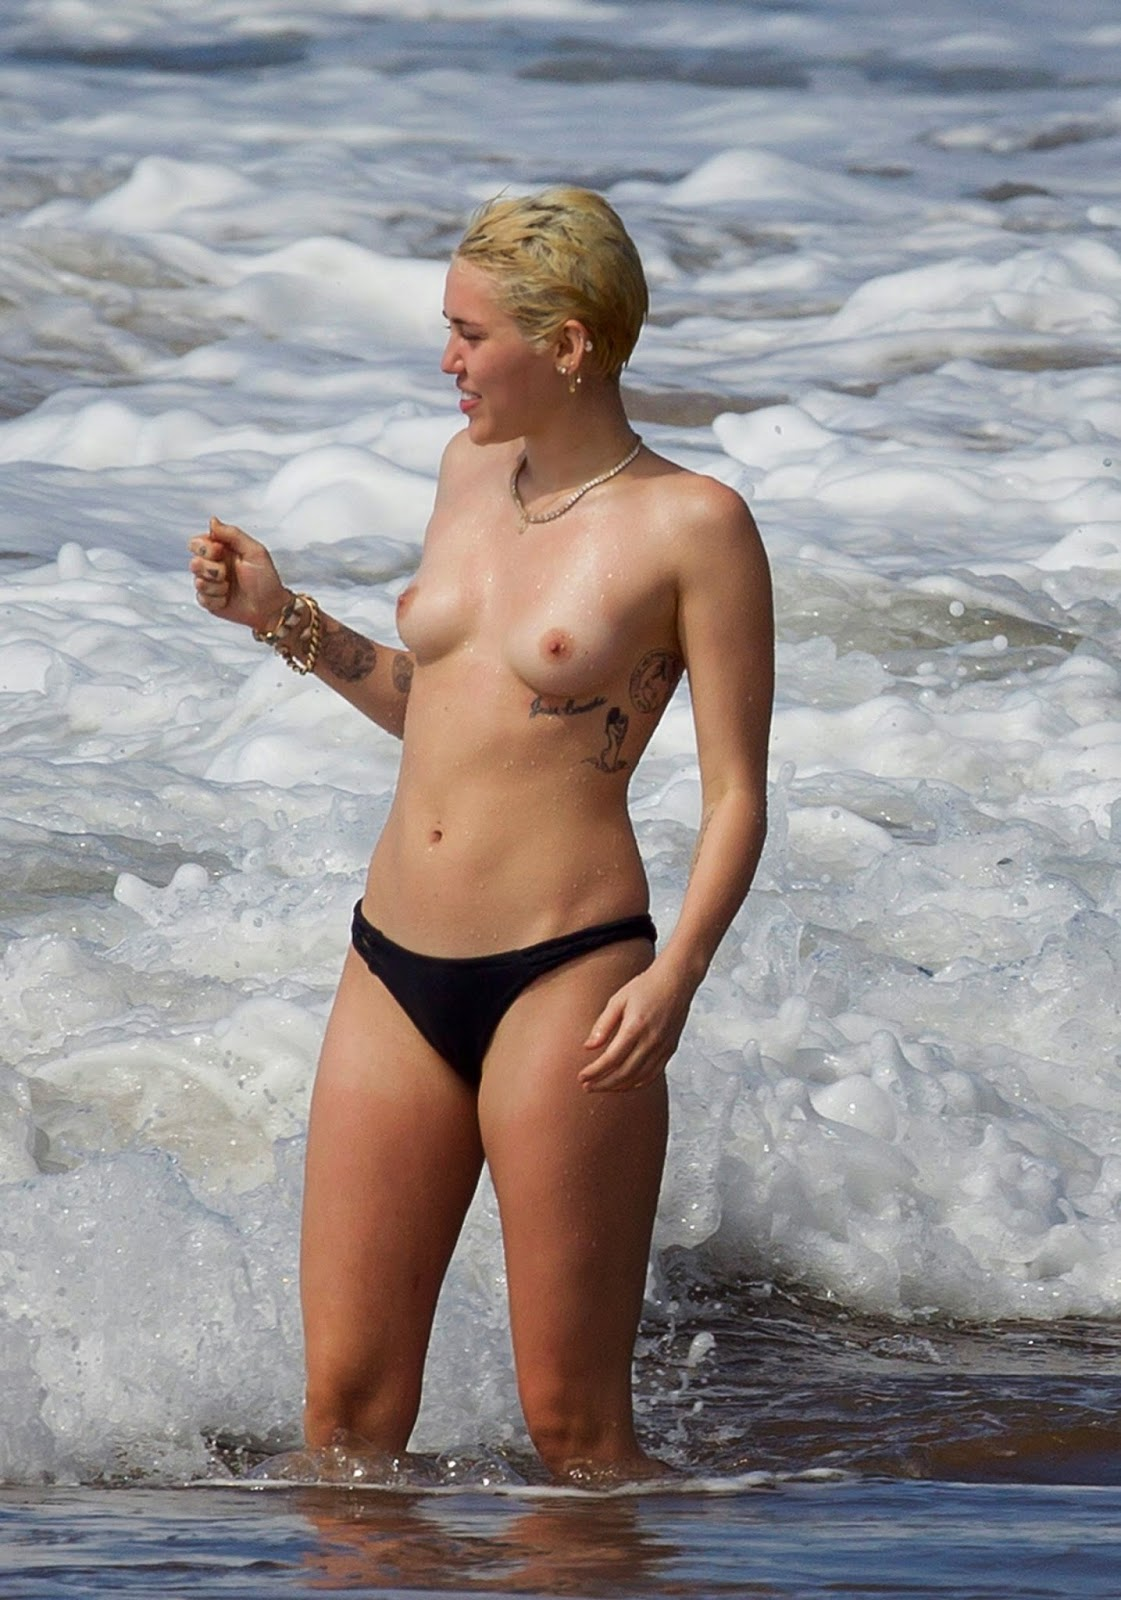 Miley Cyrus topless 2